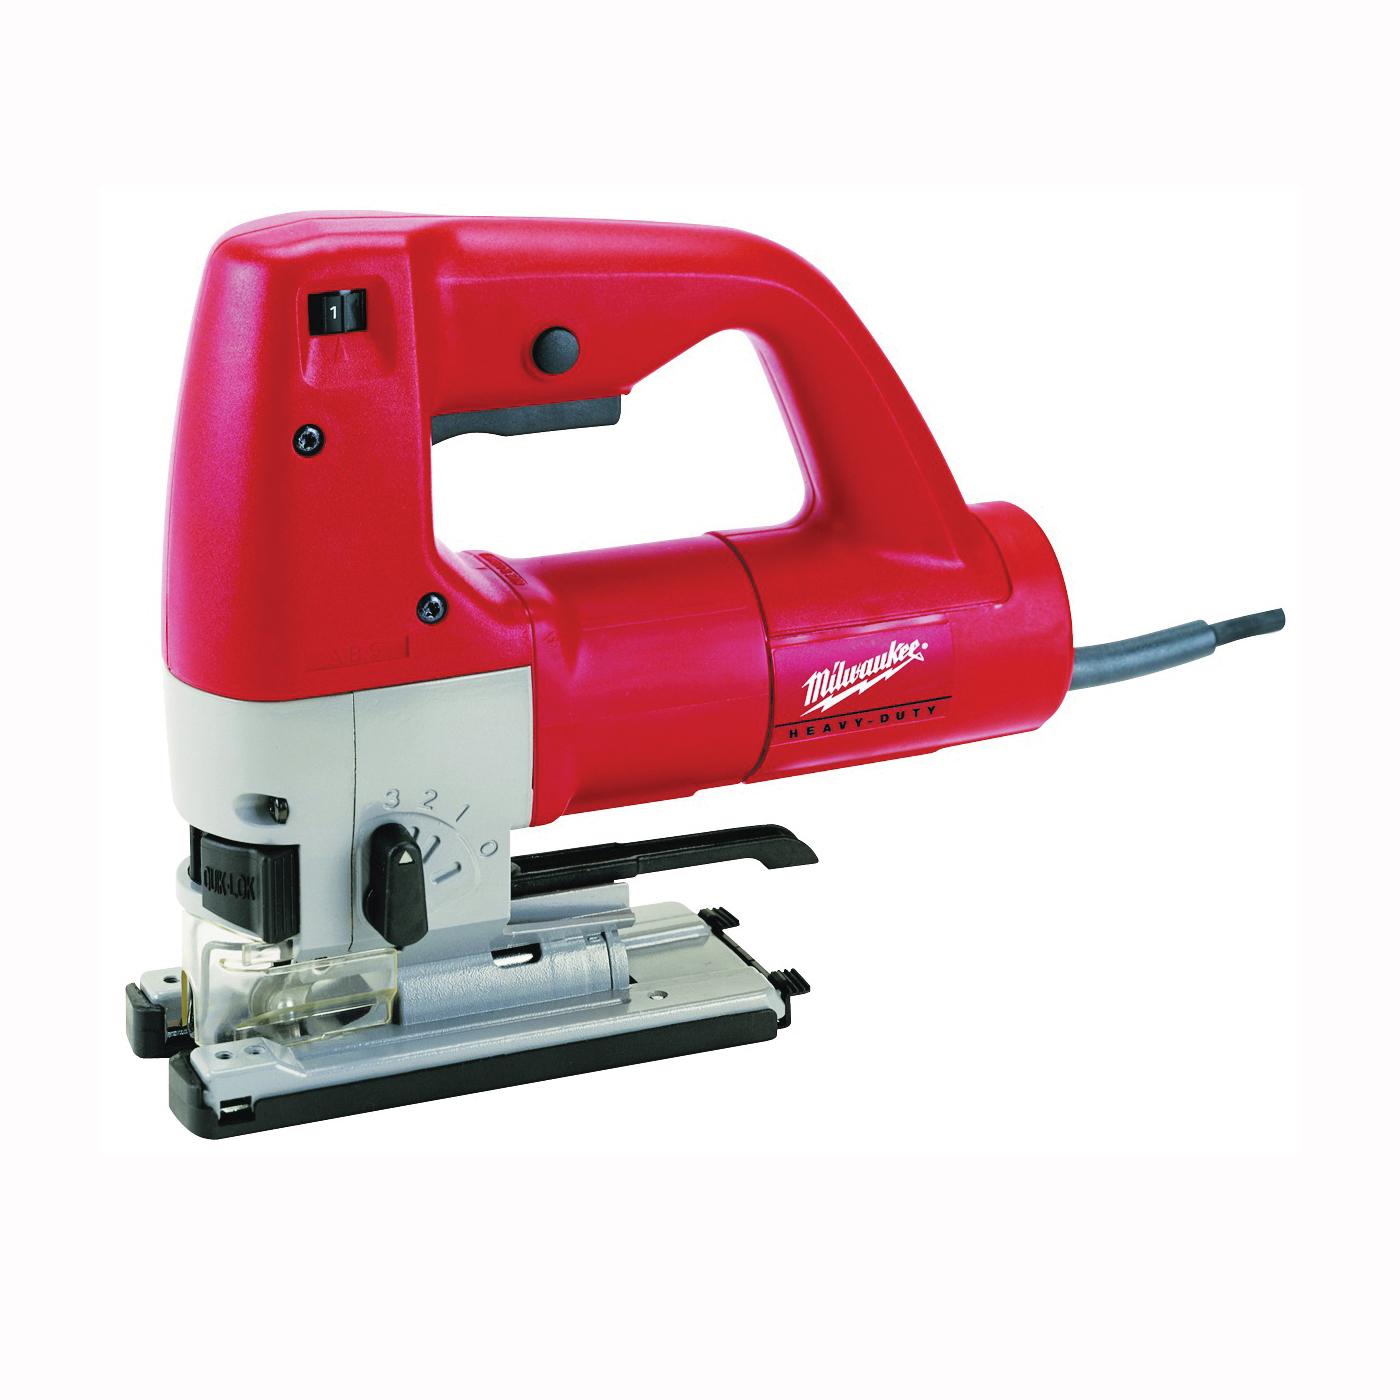 Picture of Milwaukee 6268-21 Jig Saw, 120 V, 6.5 A, 1 in L Stroke, 0 to 3000 spm SPM